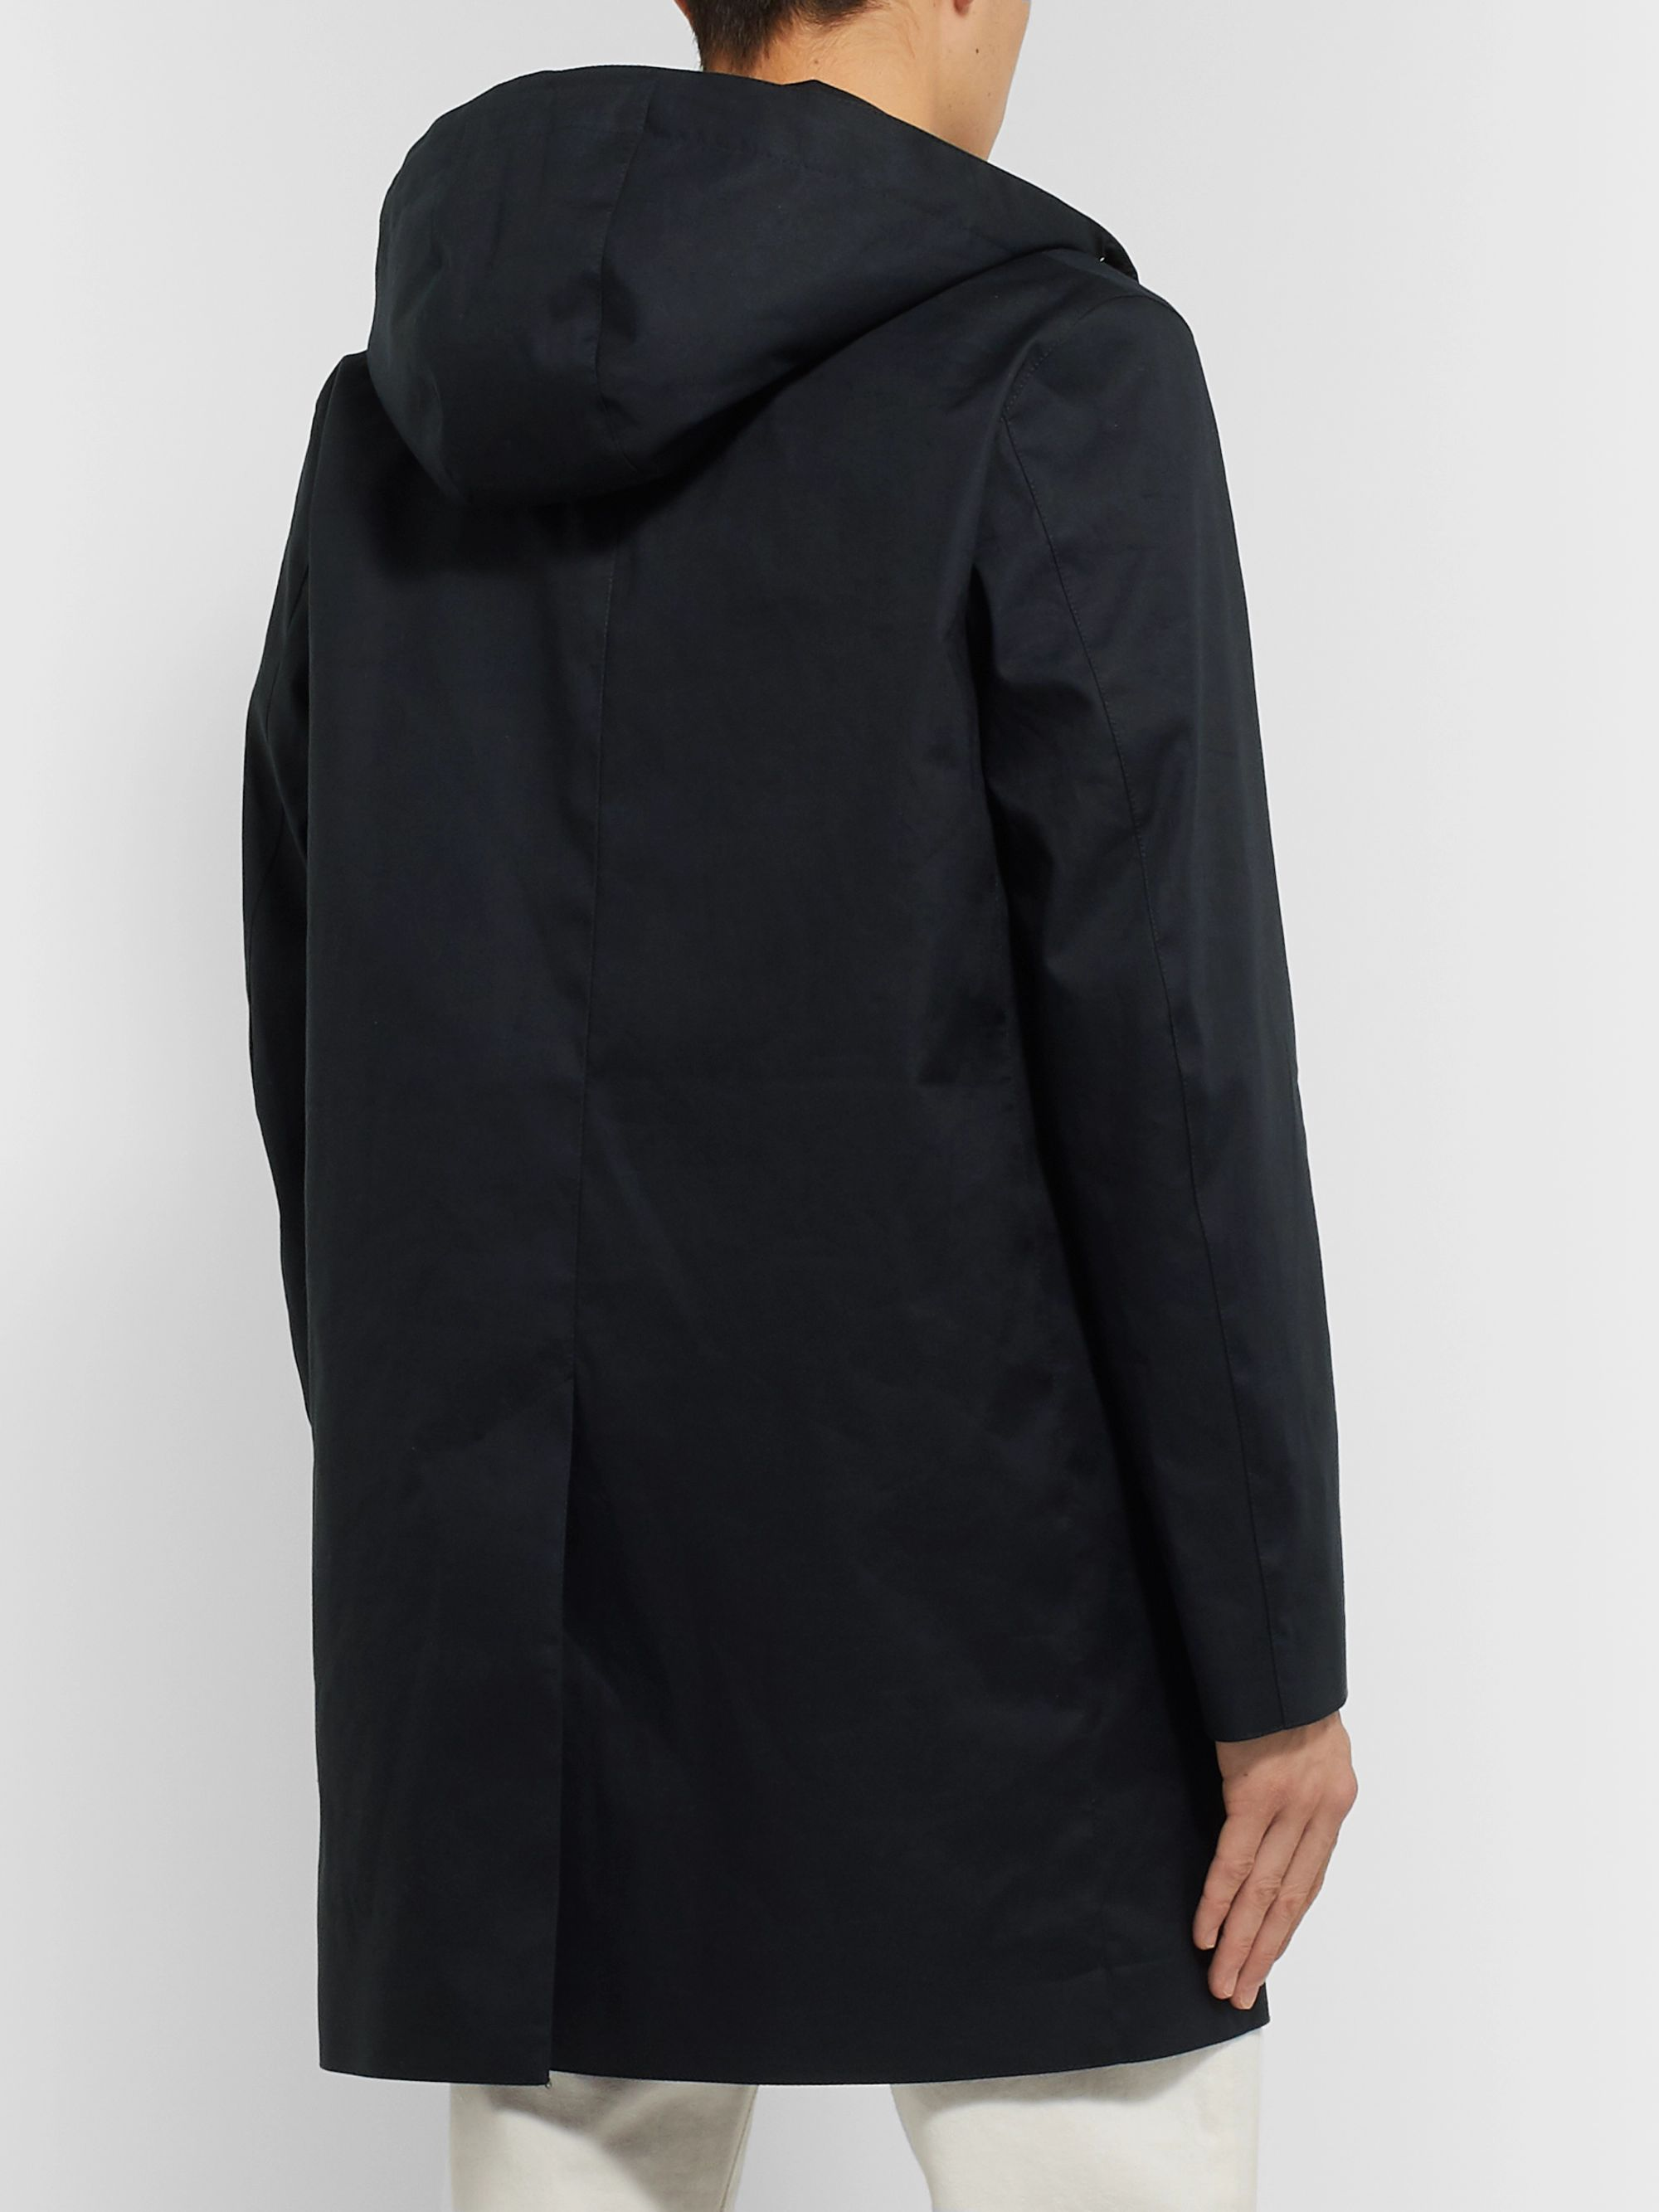 Mackintosh Bonded Cotton Hooded Raincoat